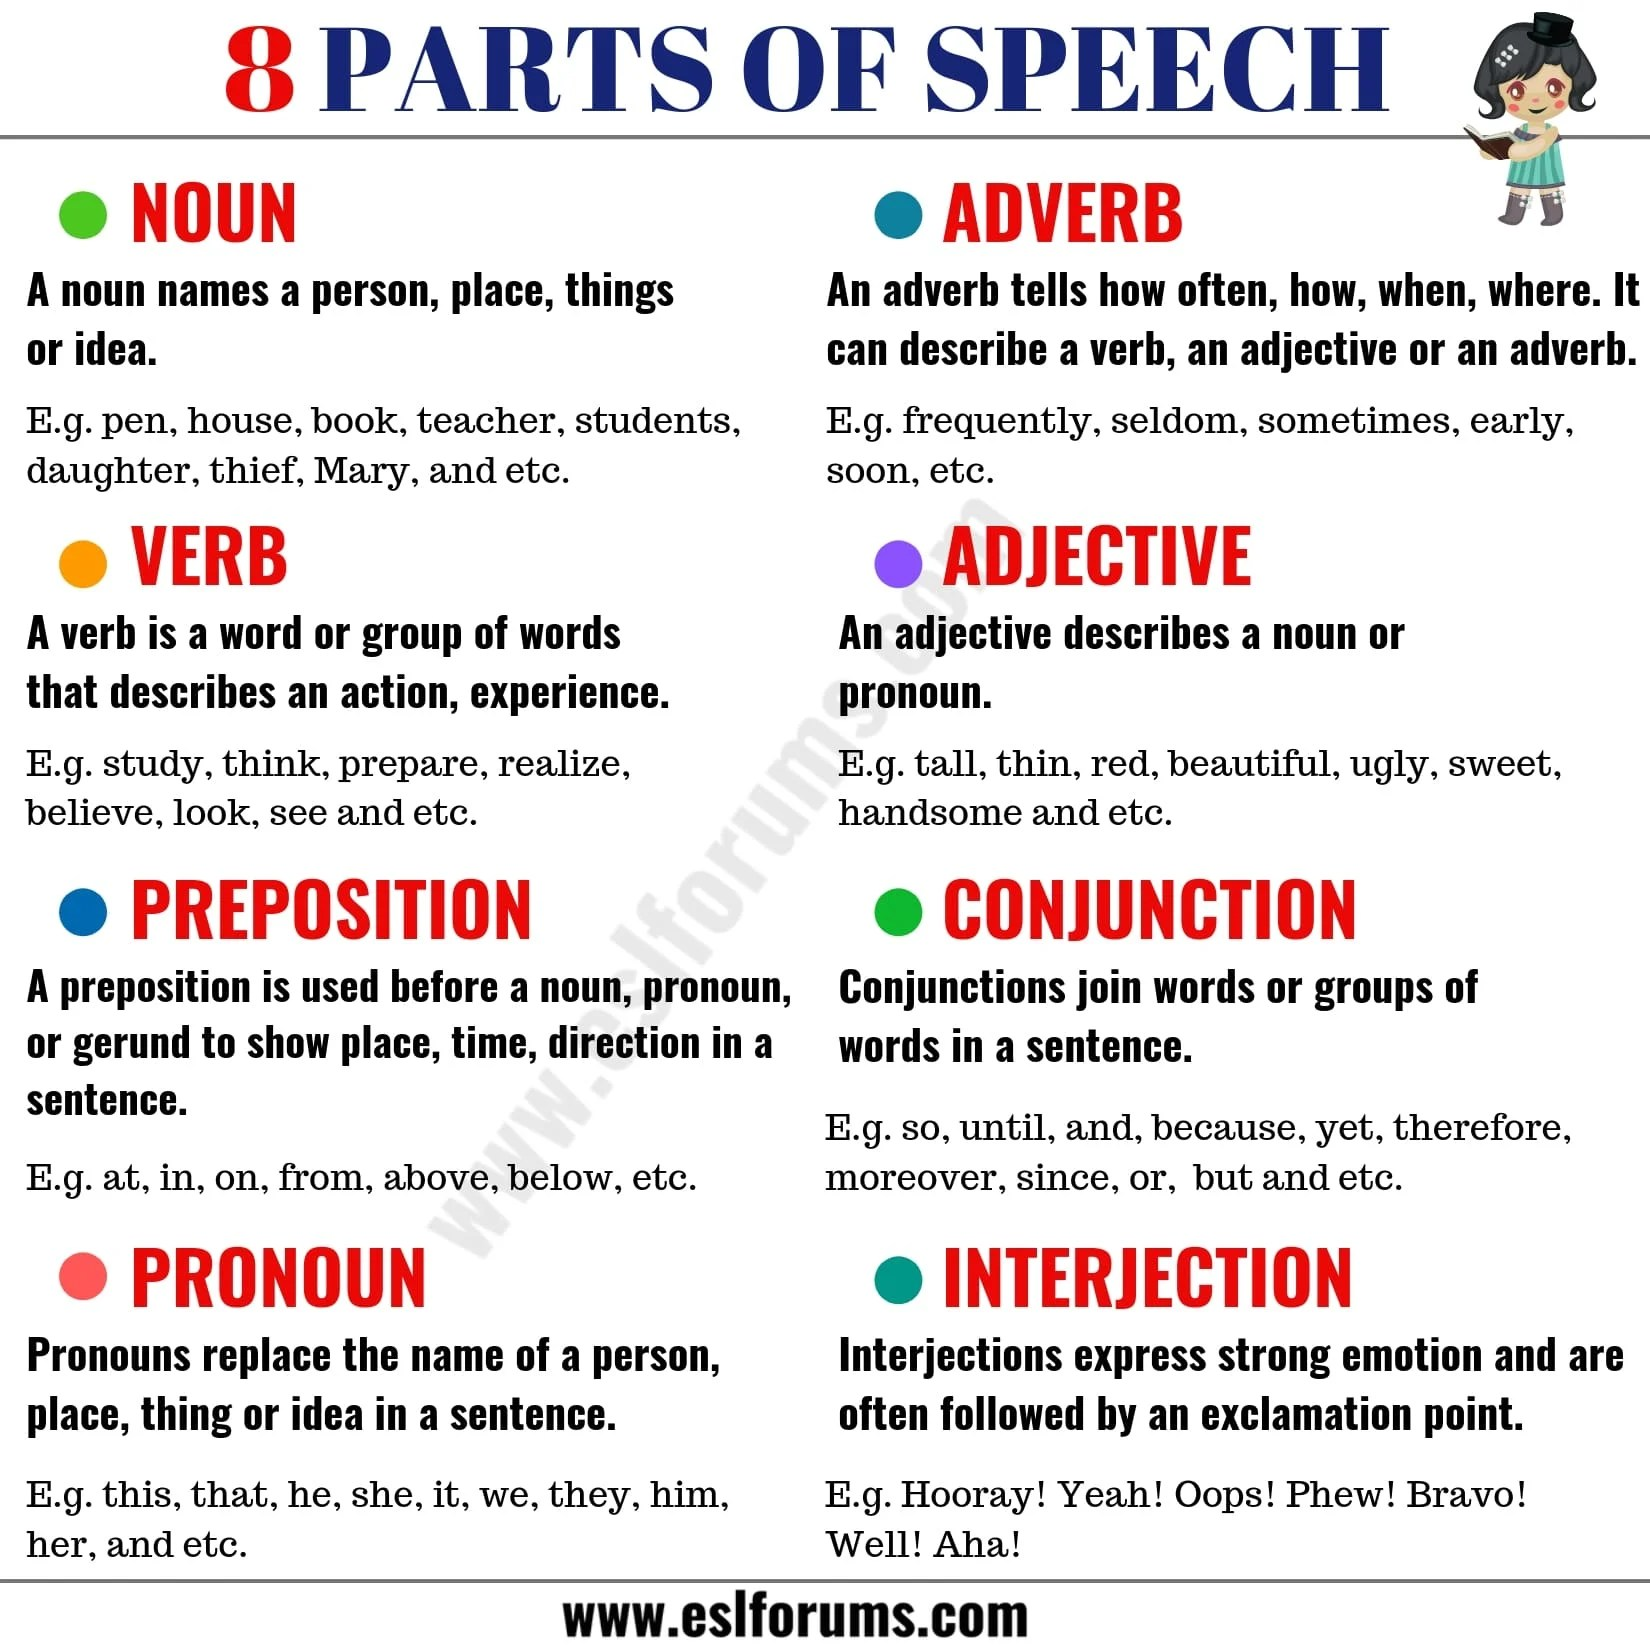 8 Parts Of Speech With Meaning And Useful Examples